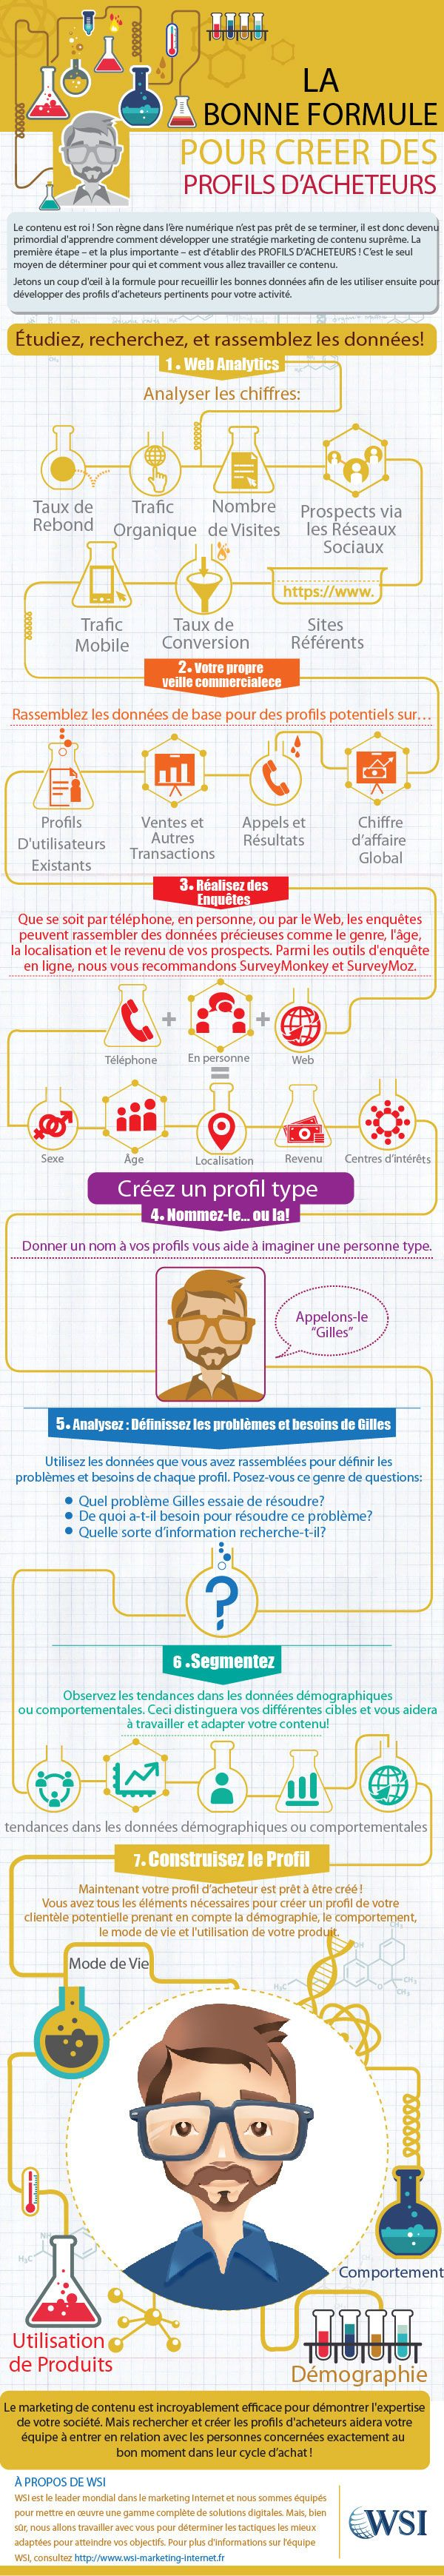 FranceInfographic-ContentMarketing1.jpg (600×3479)